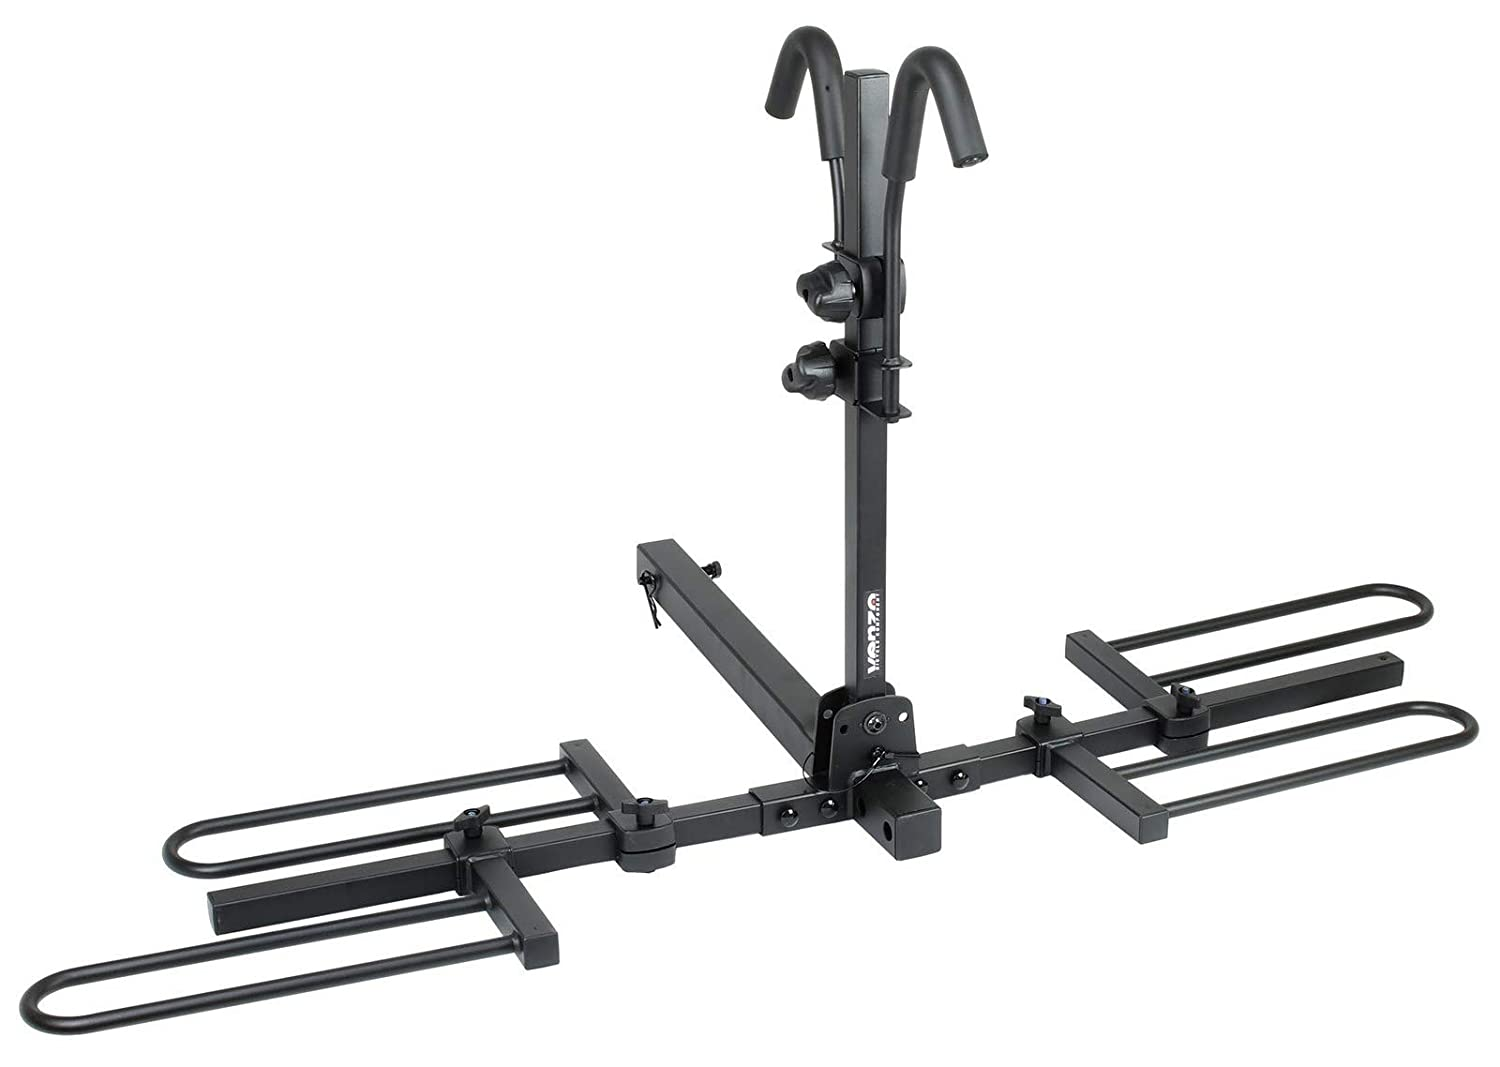 Venzo 2-4 Bike Bicycle Platform Style Carrier – Bike Rack for Car SUV Truck Tow Trailer Hitch Receiver Mount Size 2 or 1.25 – Sturdy Rust Proof